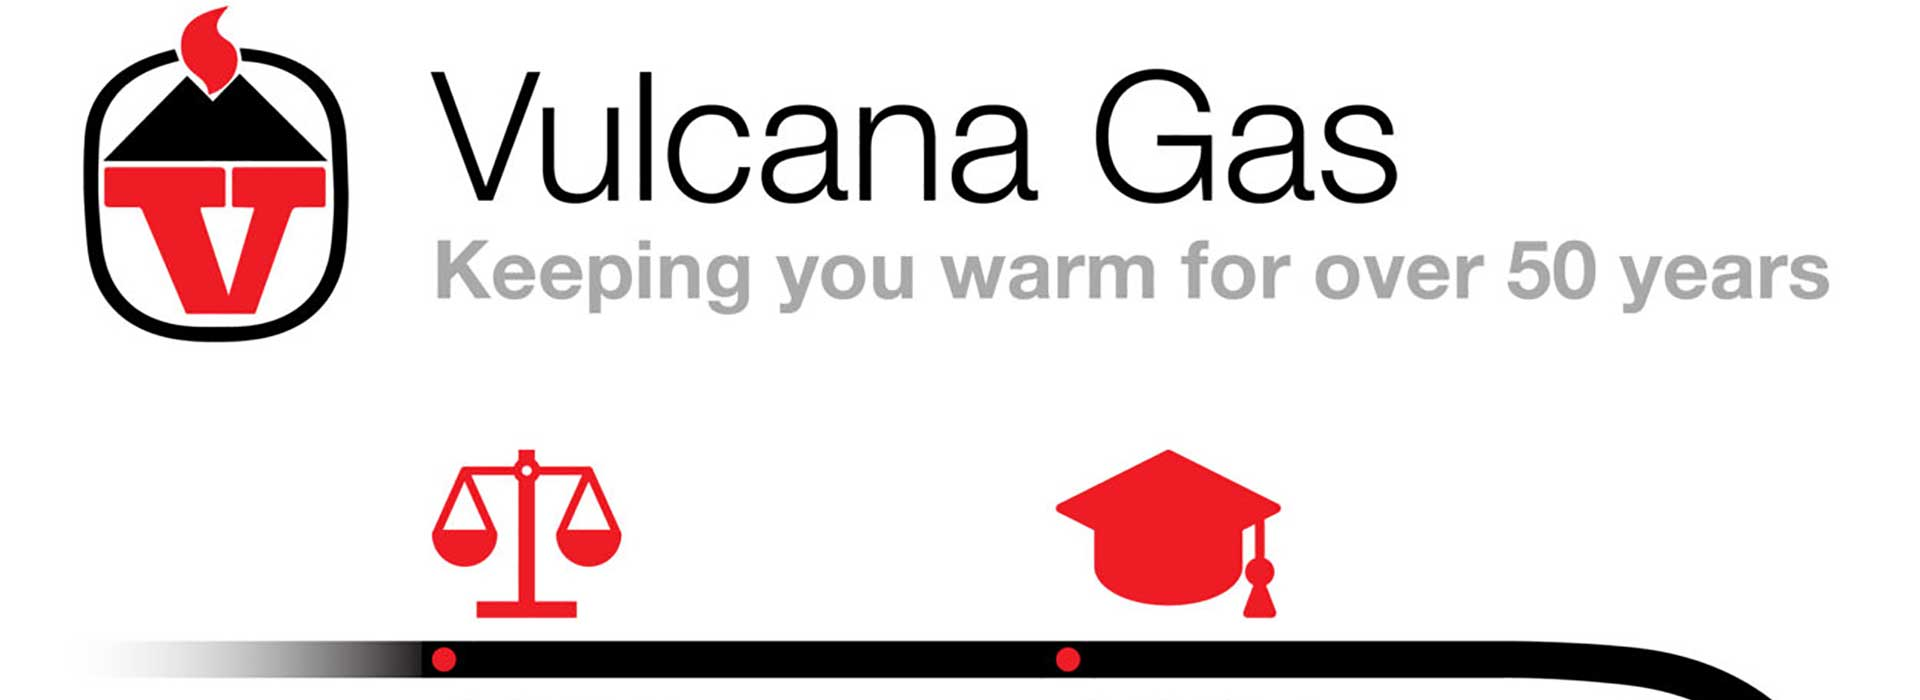 Vulcana Space Heating Solutions – keeping you warm for over 50 years